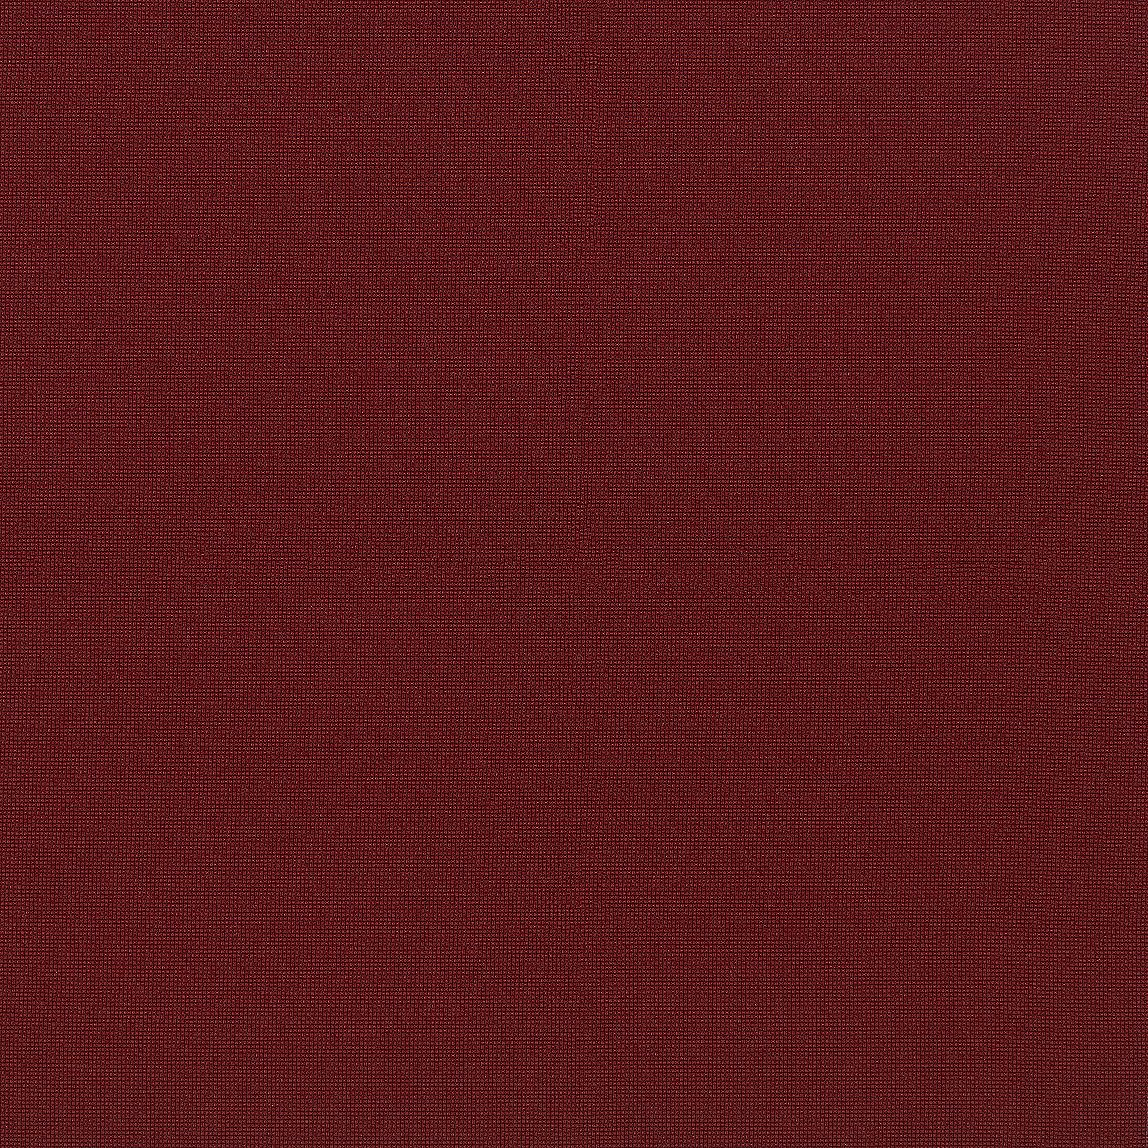 Muse Poinsettia Swatch